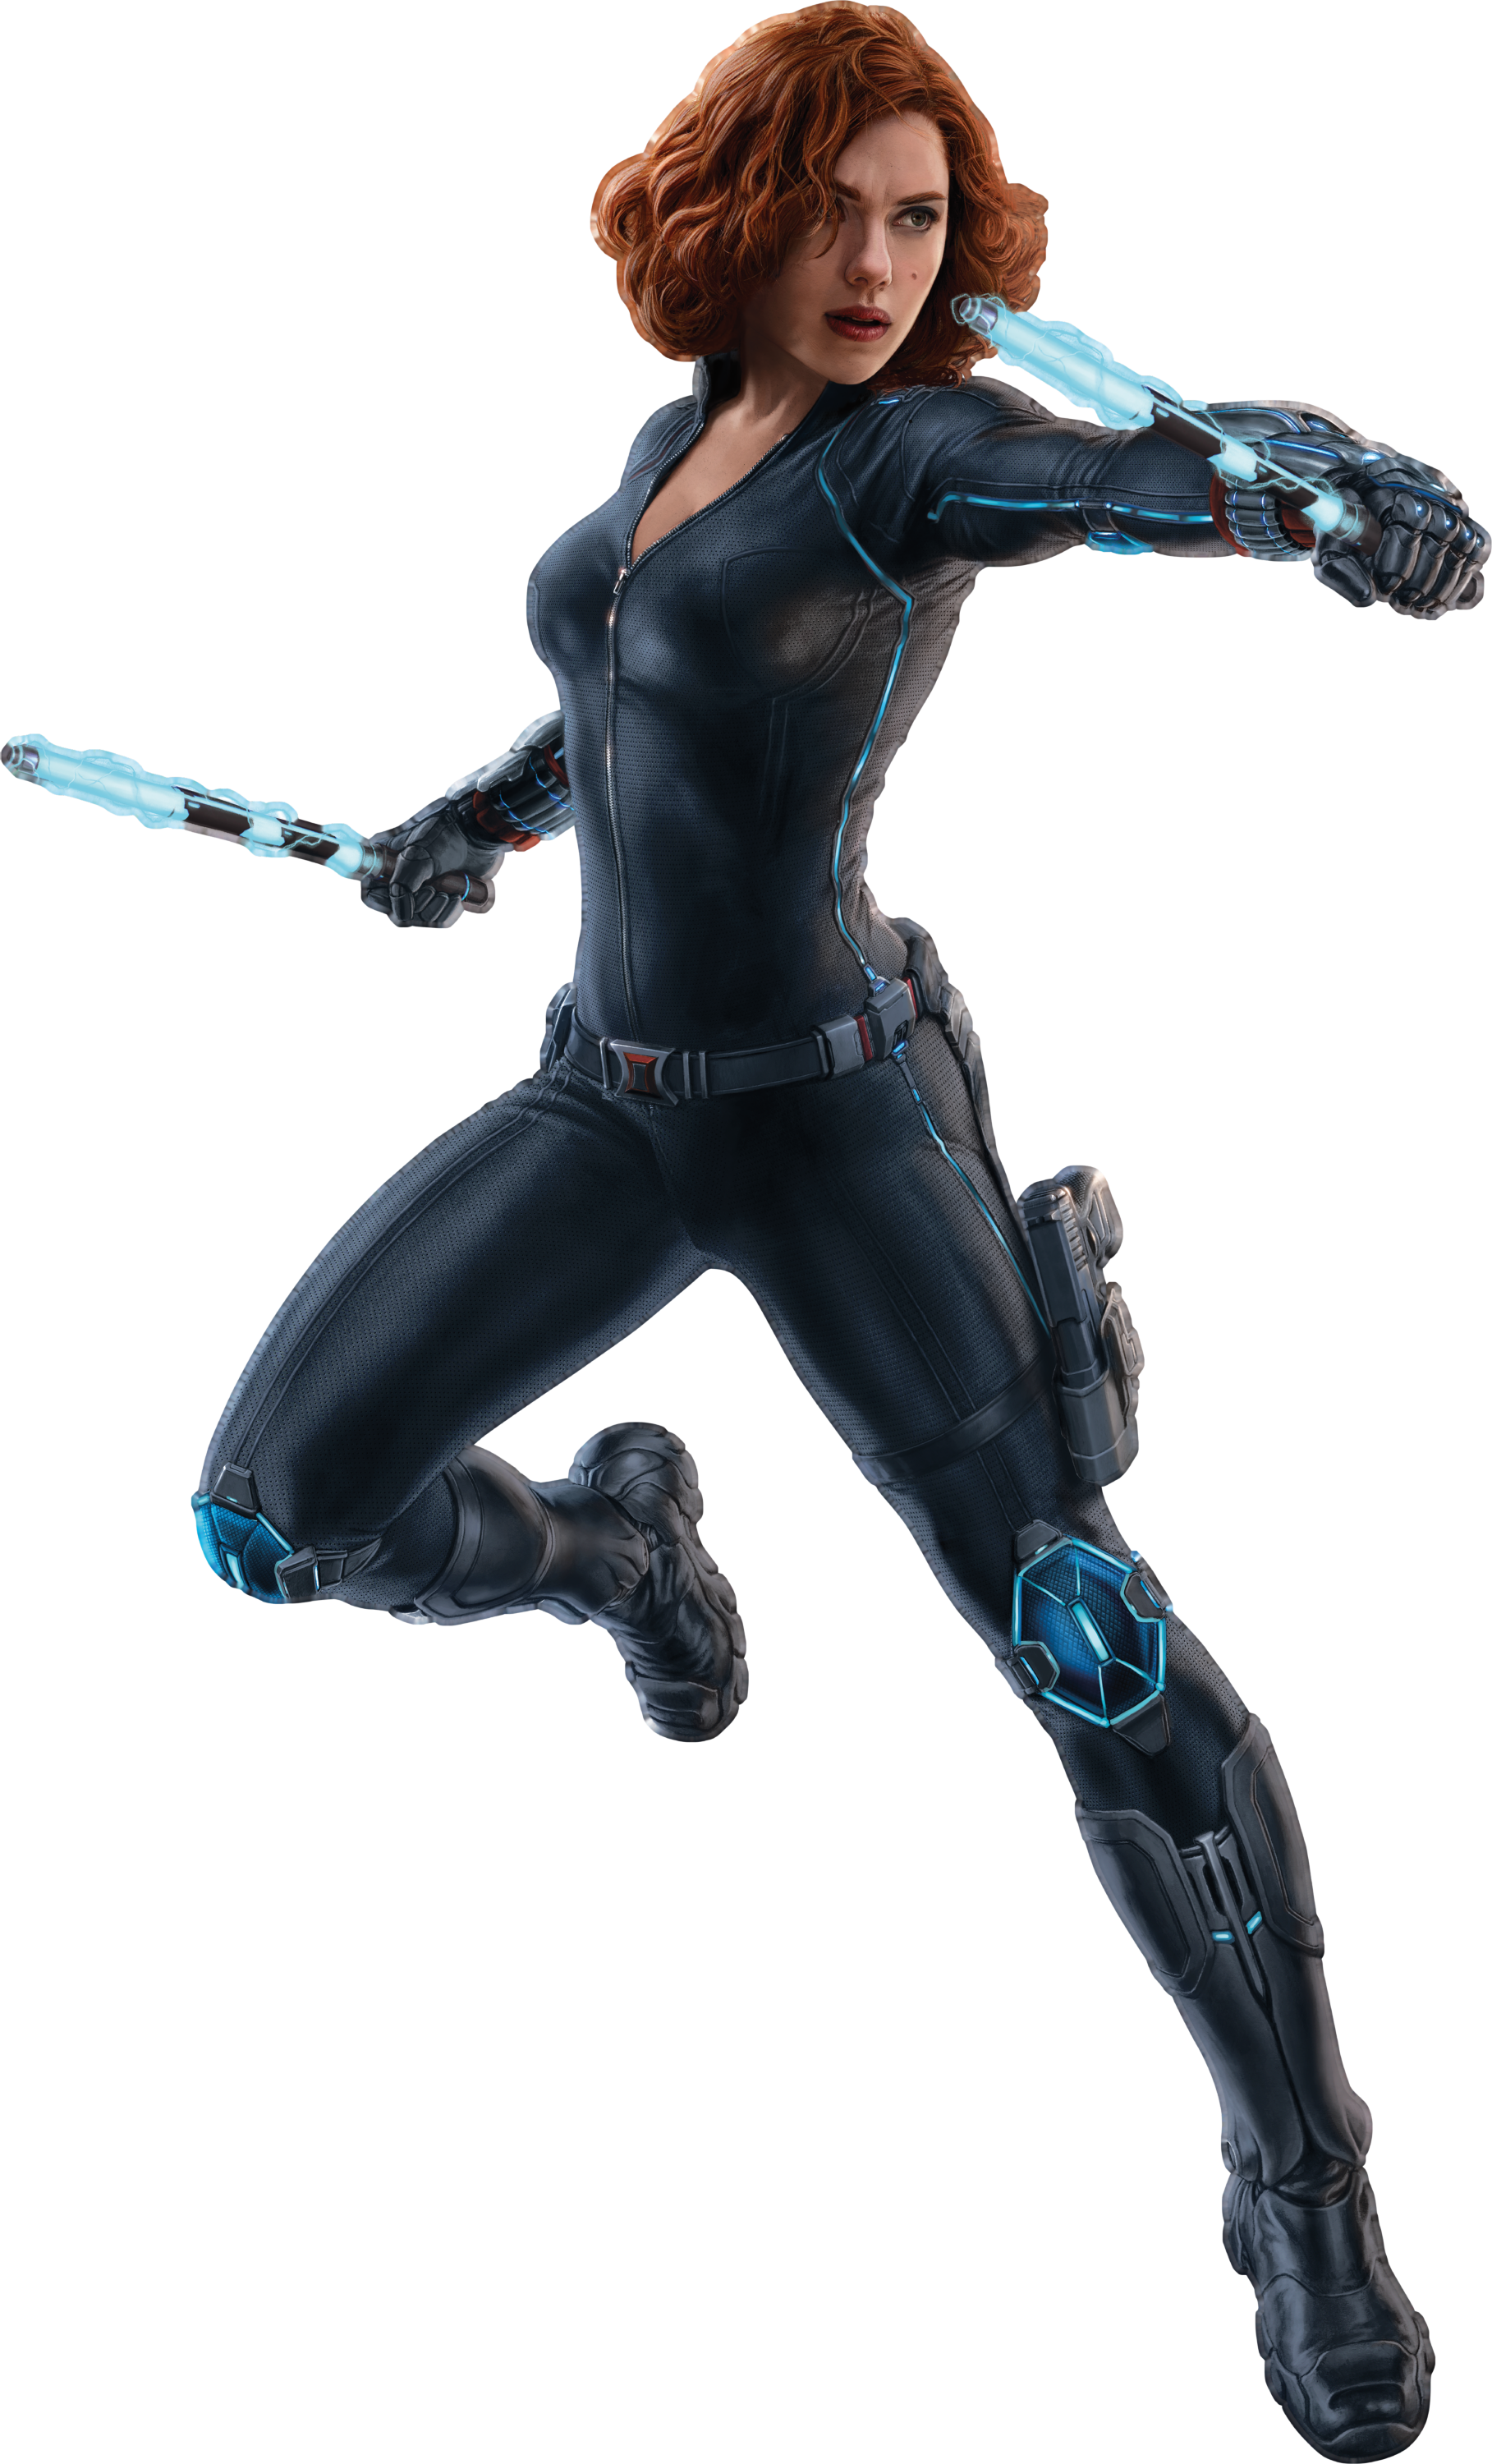 Marvel black widow logo png. Image aoubw avengers alliance